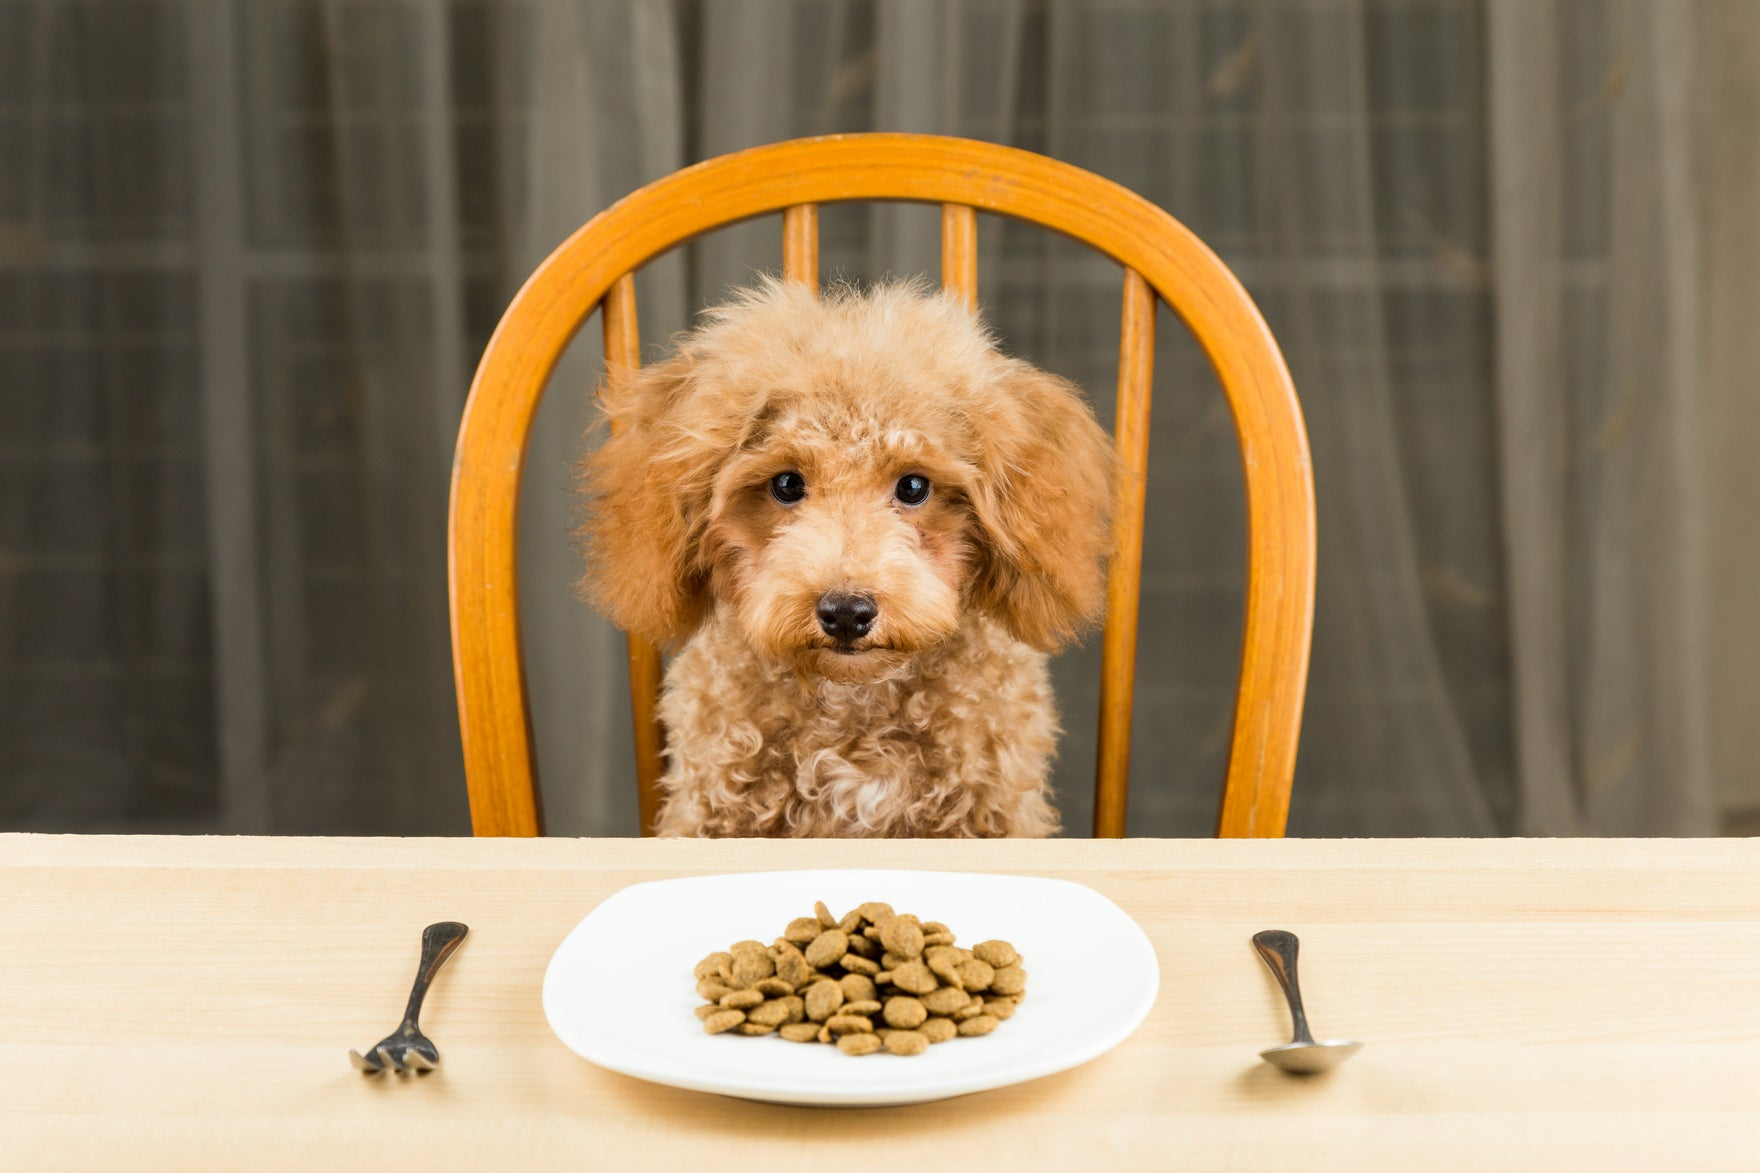 Treating Your Dog with Food